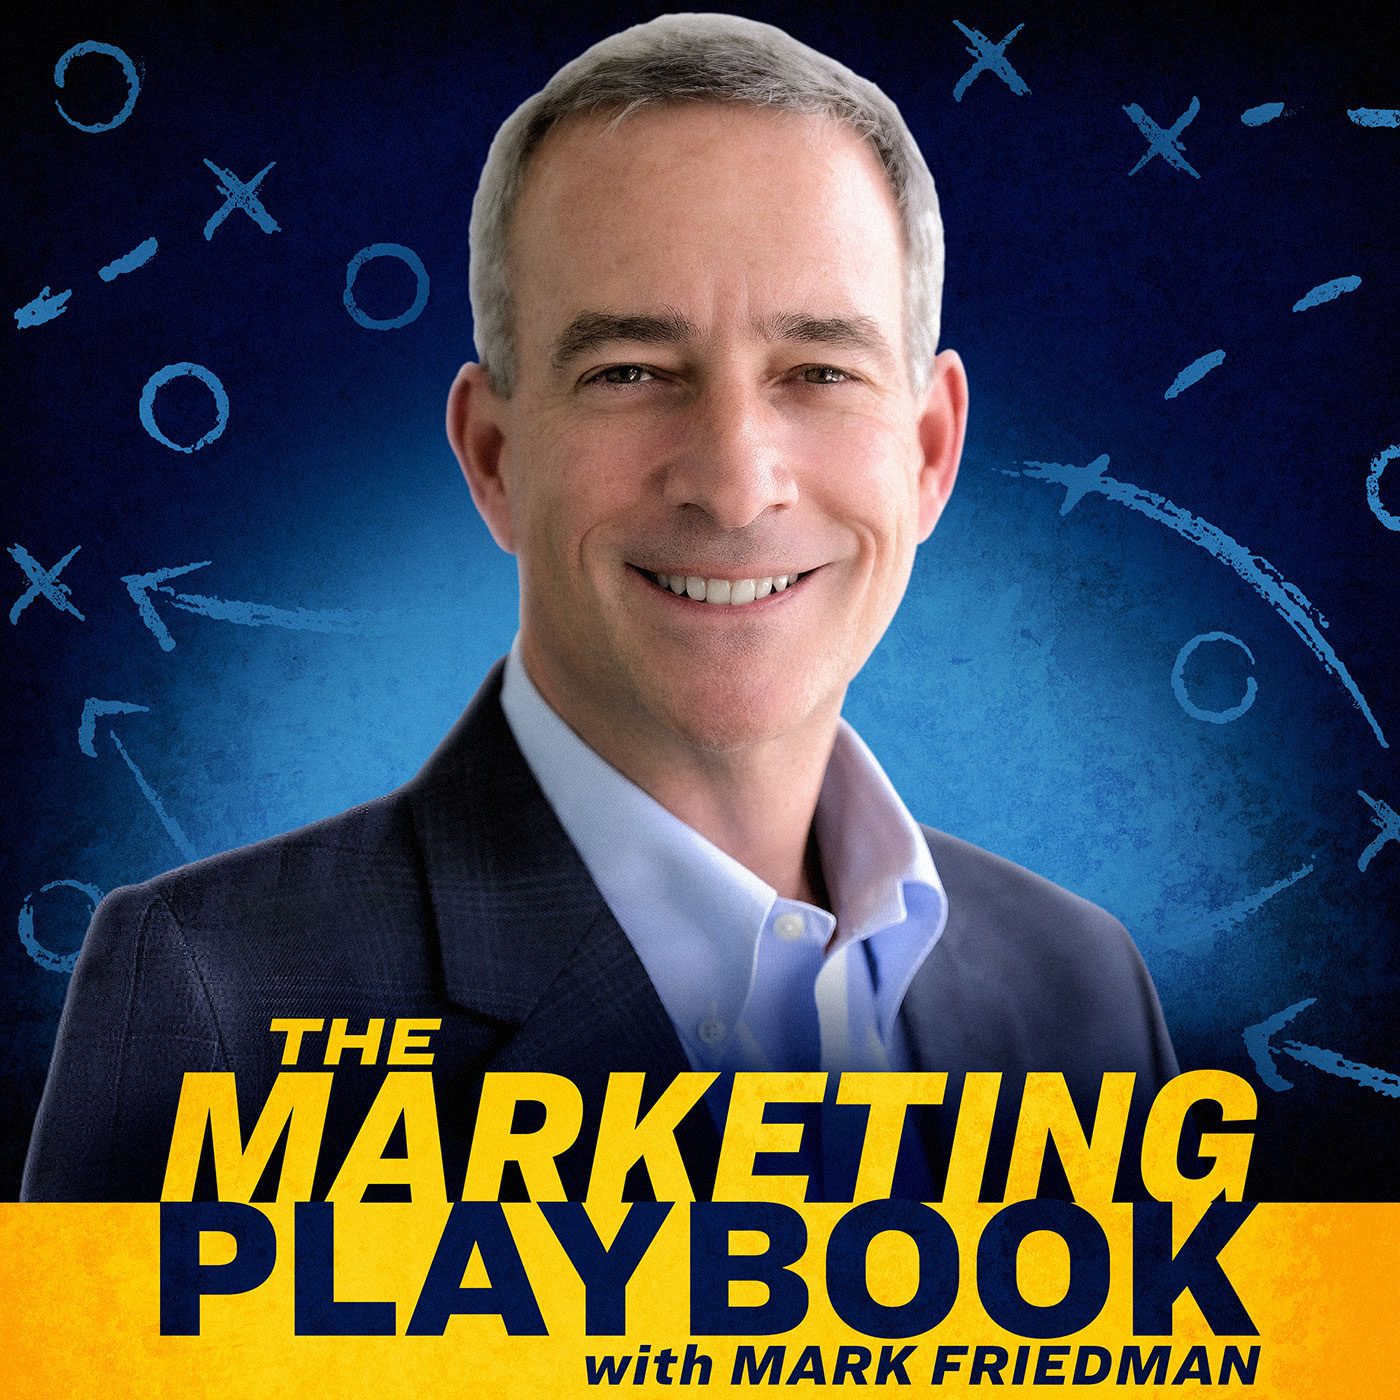 Craig Brommers on The Marketing Playbook Podcast with Mark Friedman: CMO of American Eagle Outfitters